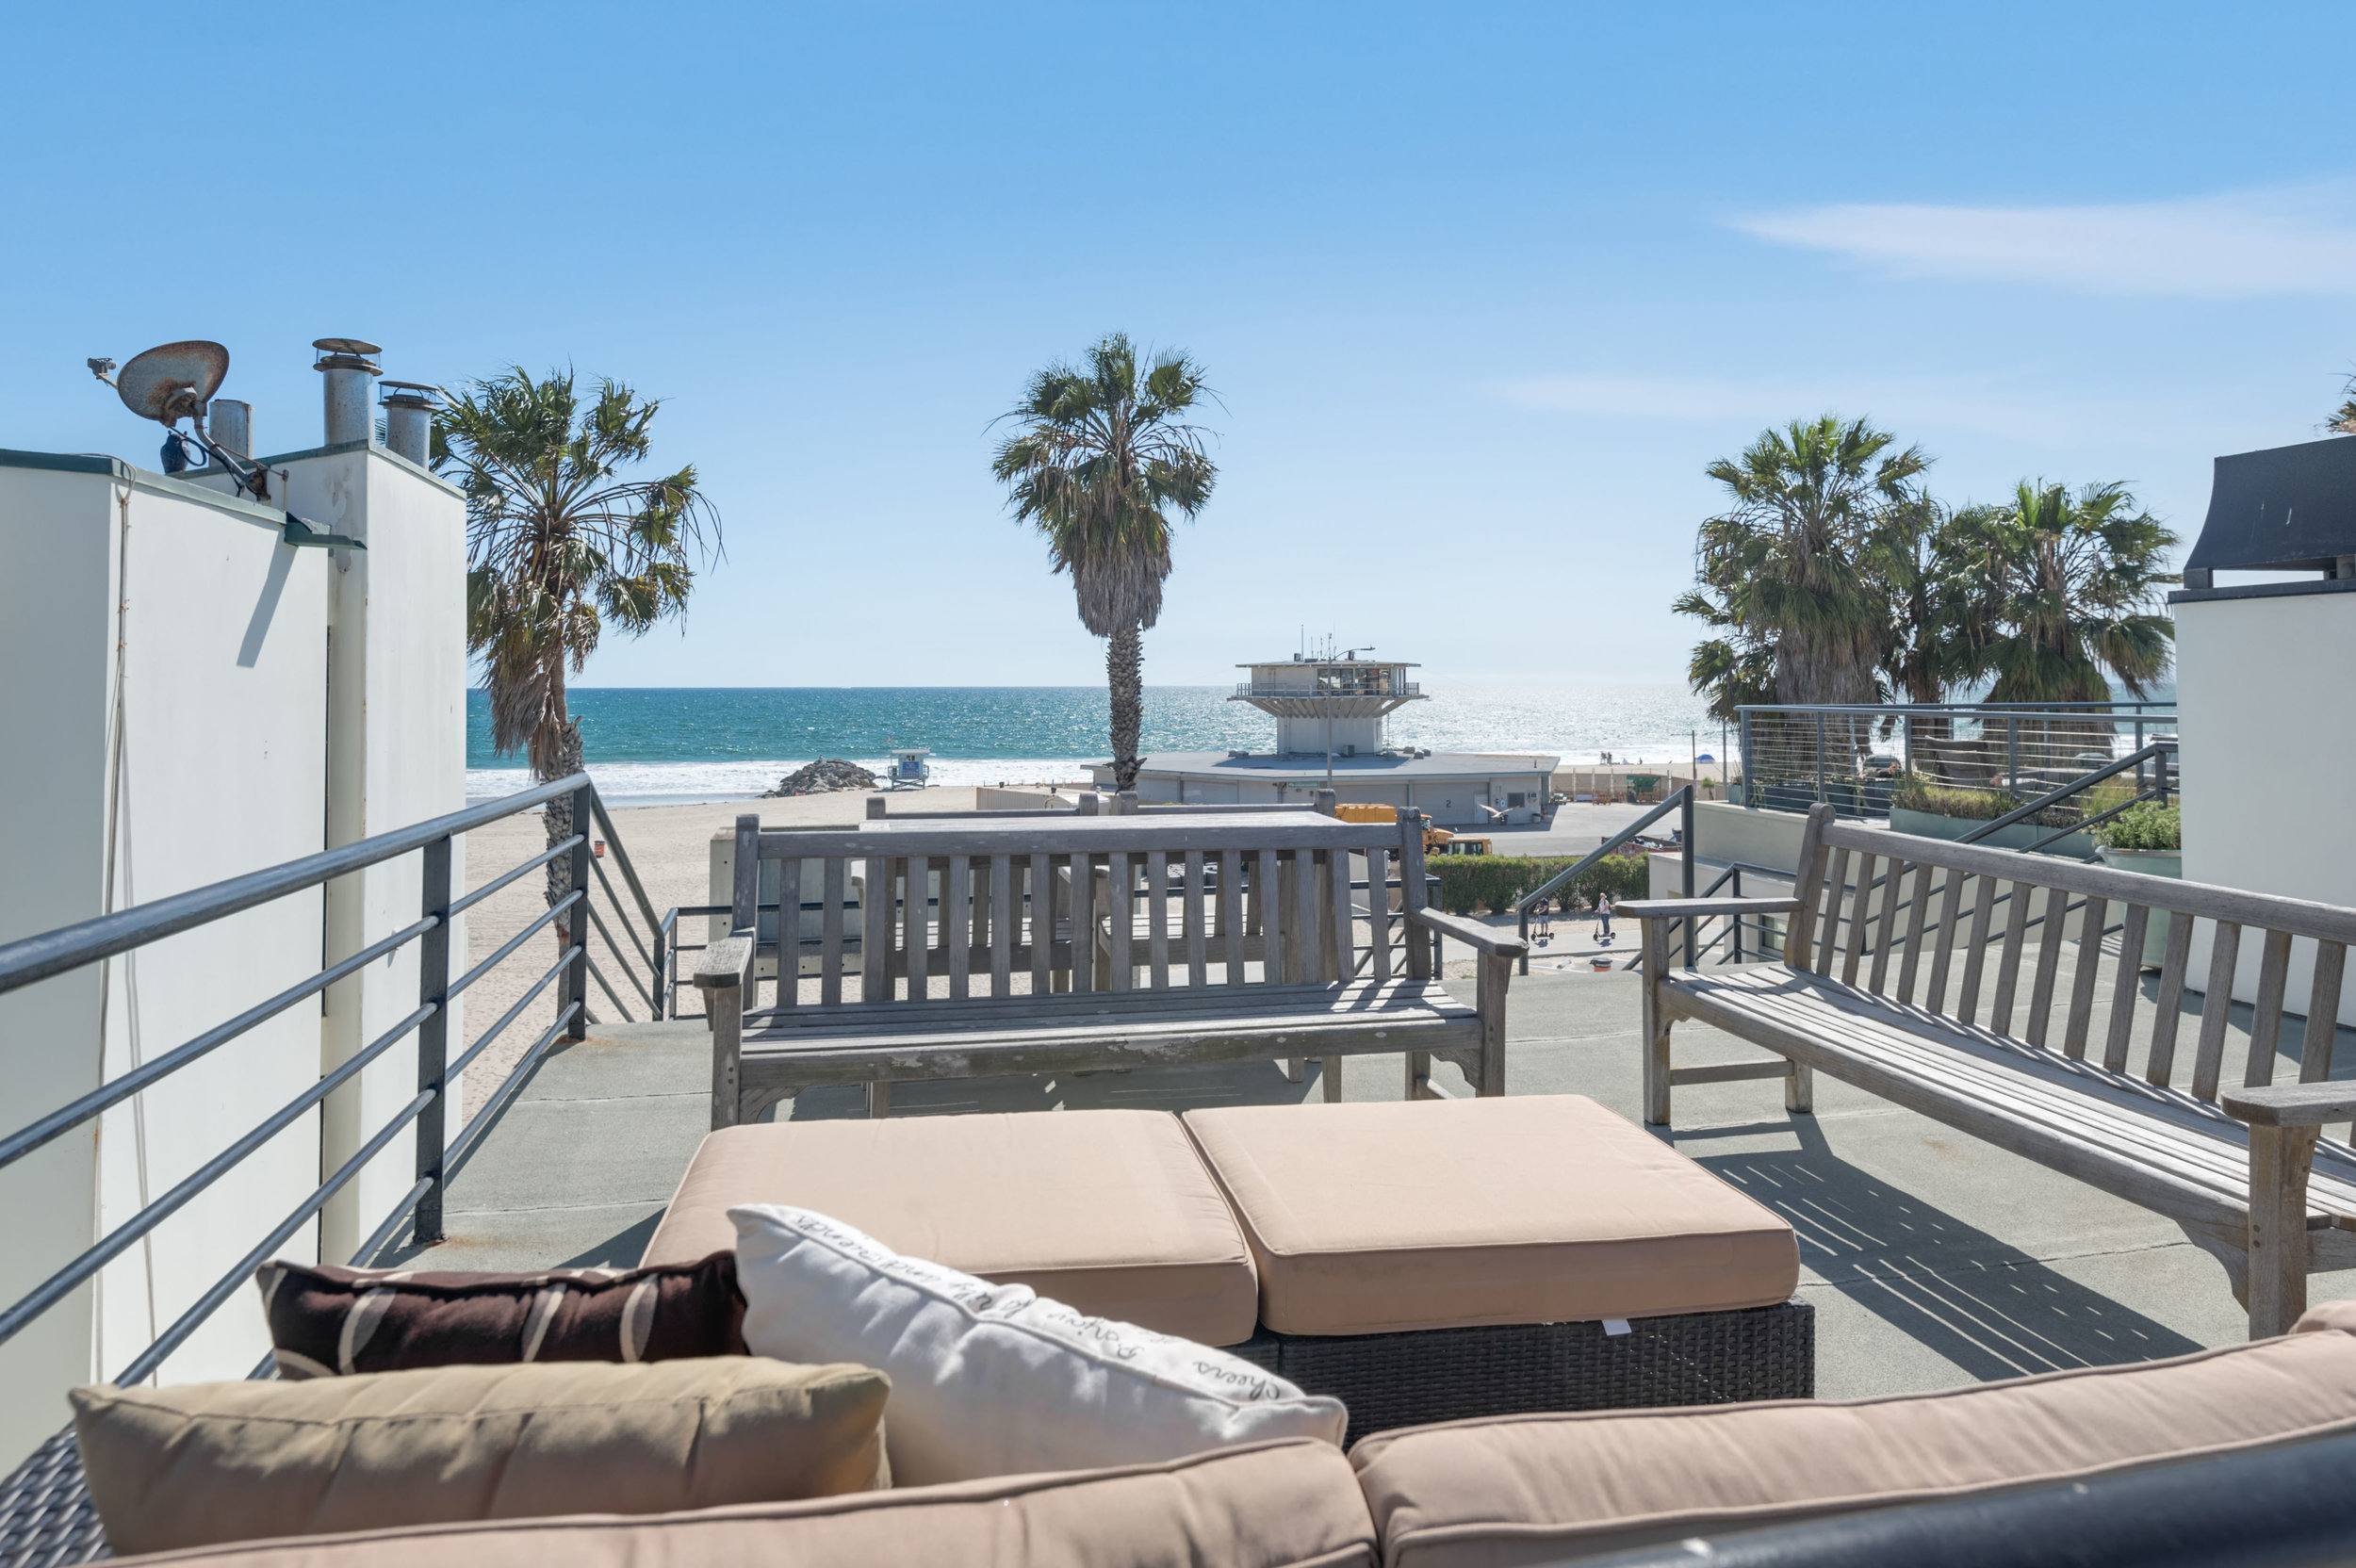 002 Roof Ocean Front Walk Venice For Sale Lease The Malibu Life Team Luxury Real Estate.jpg